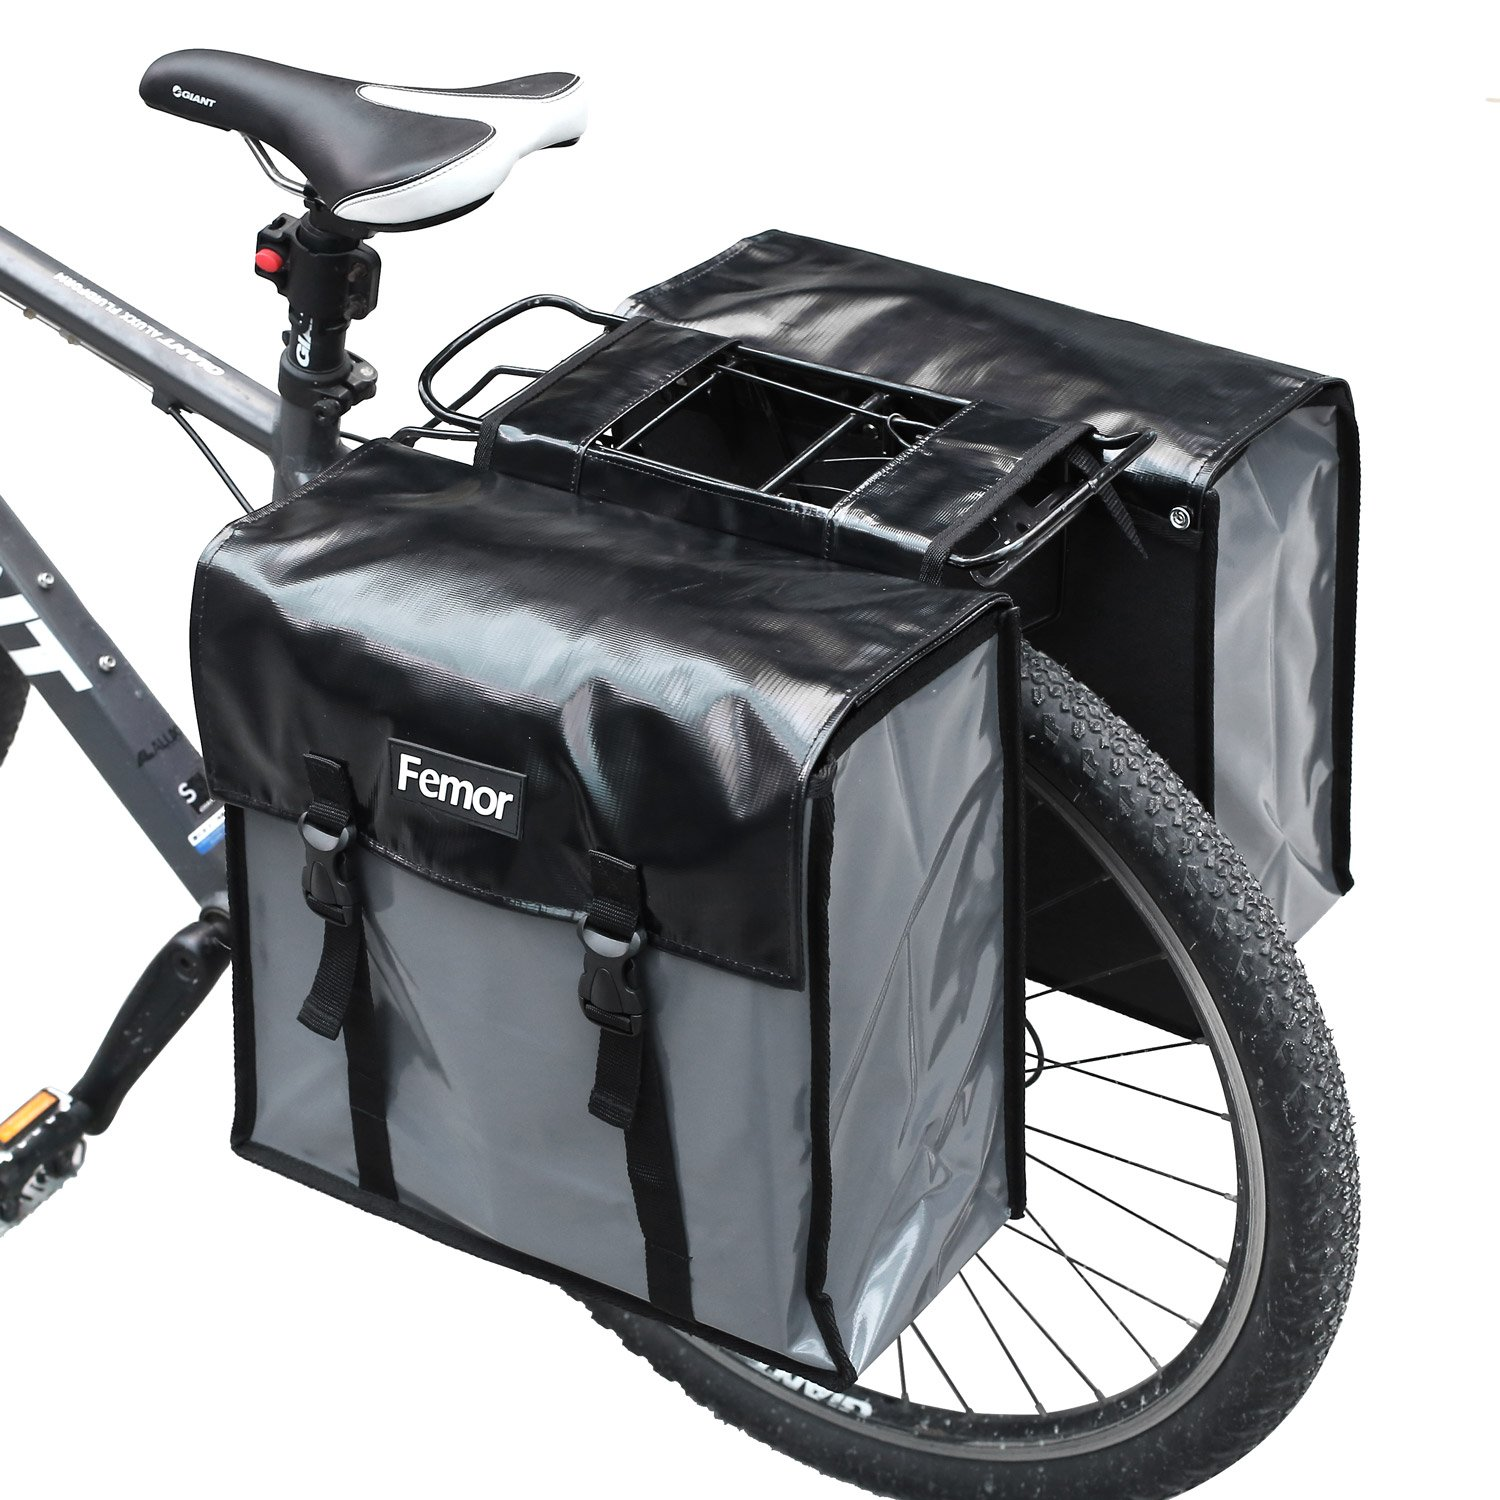 femor Waterproof Bike Bag Bicycle Panniers, 40L Double Luggage Pannier Bag with Adjustable Straps and 3M Reflective Trim, Best Mountain Road Bike Trunk Bag, Black